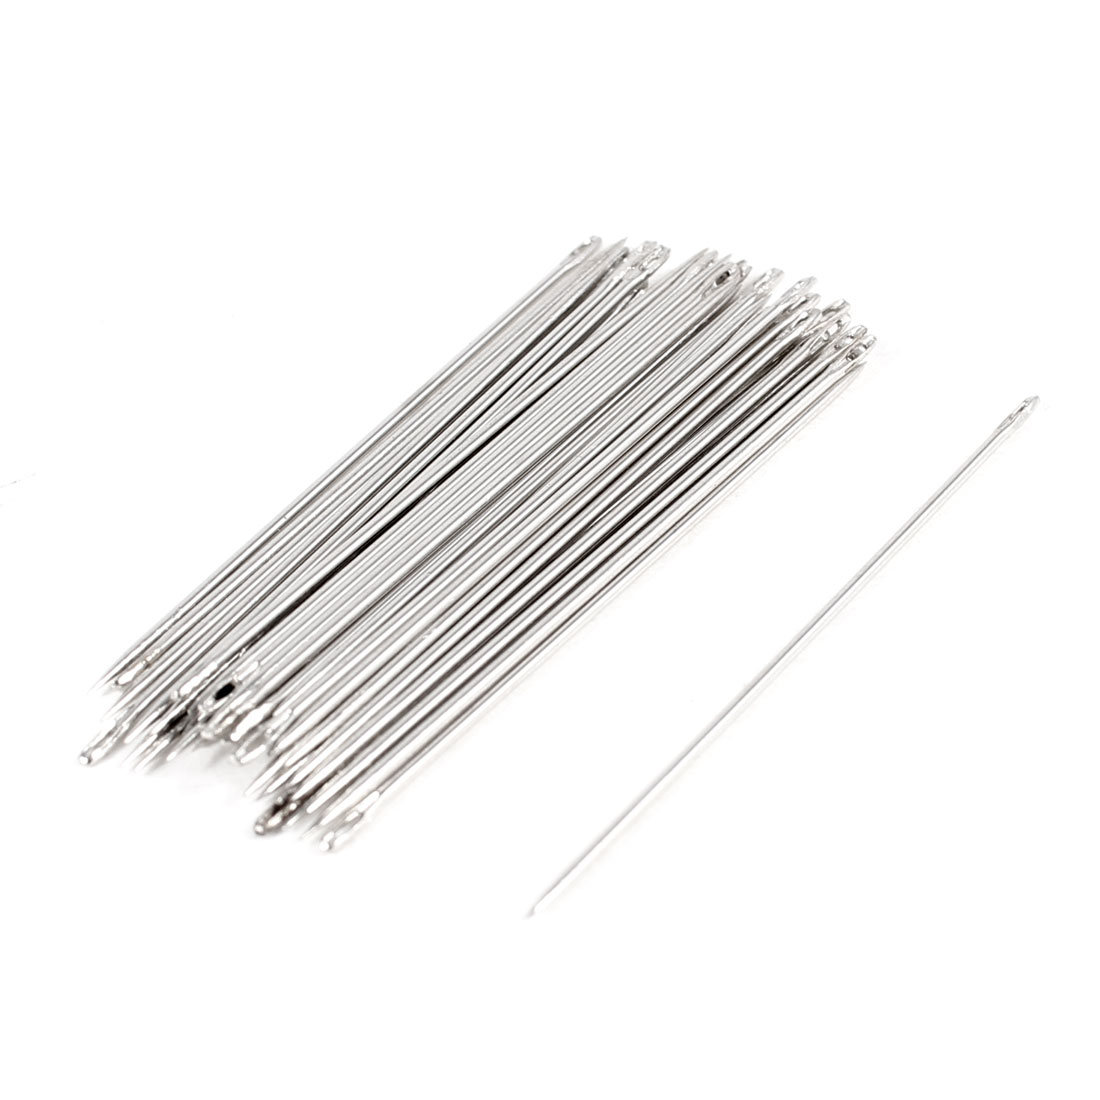 37 Pcs Silver Tone Stainless Steel Sack Bag Packing Stitching Needles 1.7""